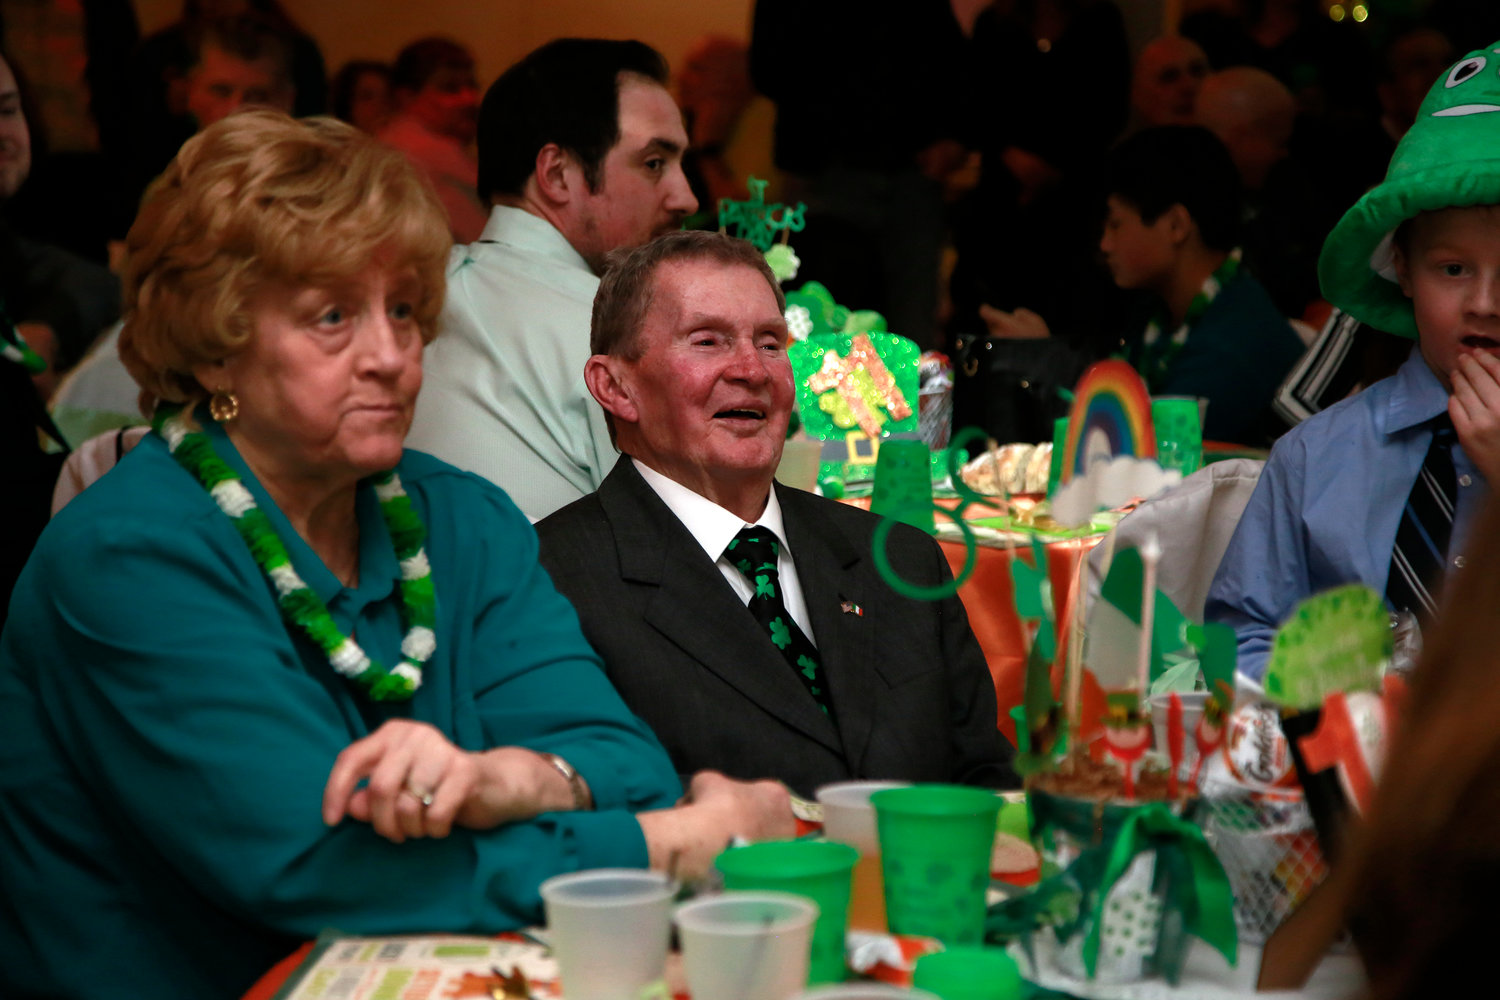 Edward Buckley listened to the opening remarks at the St. Patrick's-themed event held in his honor.